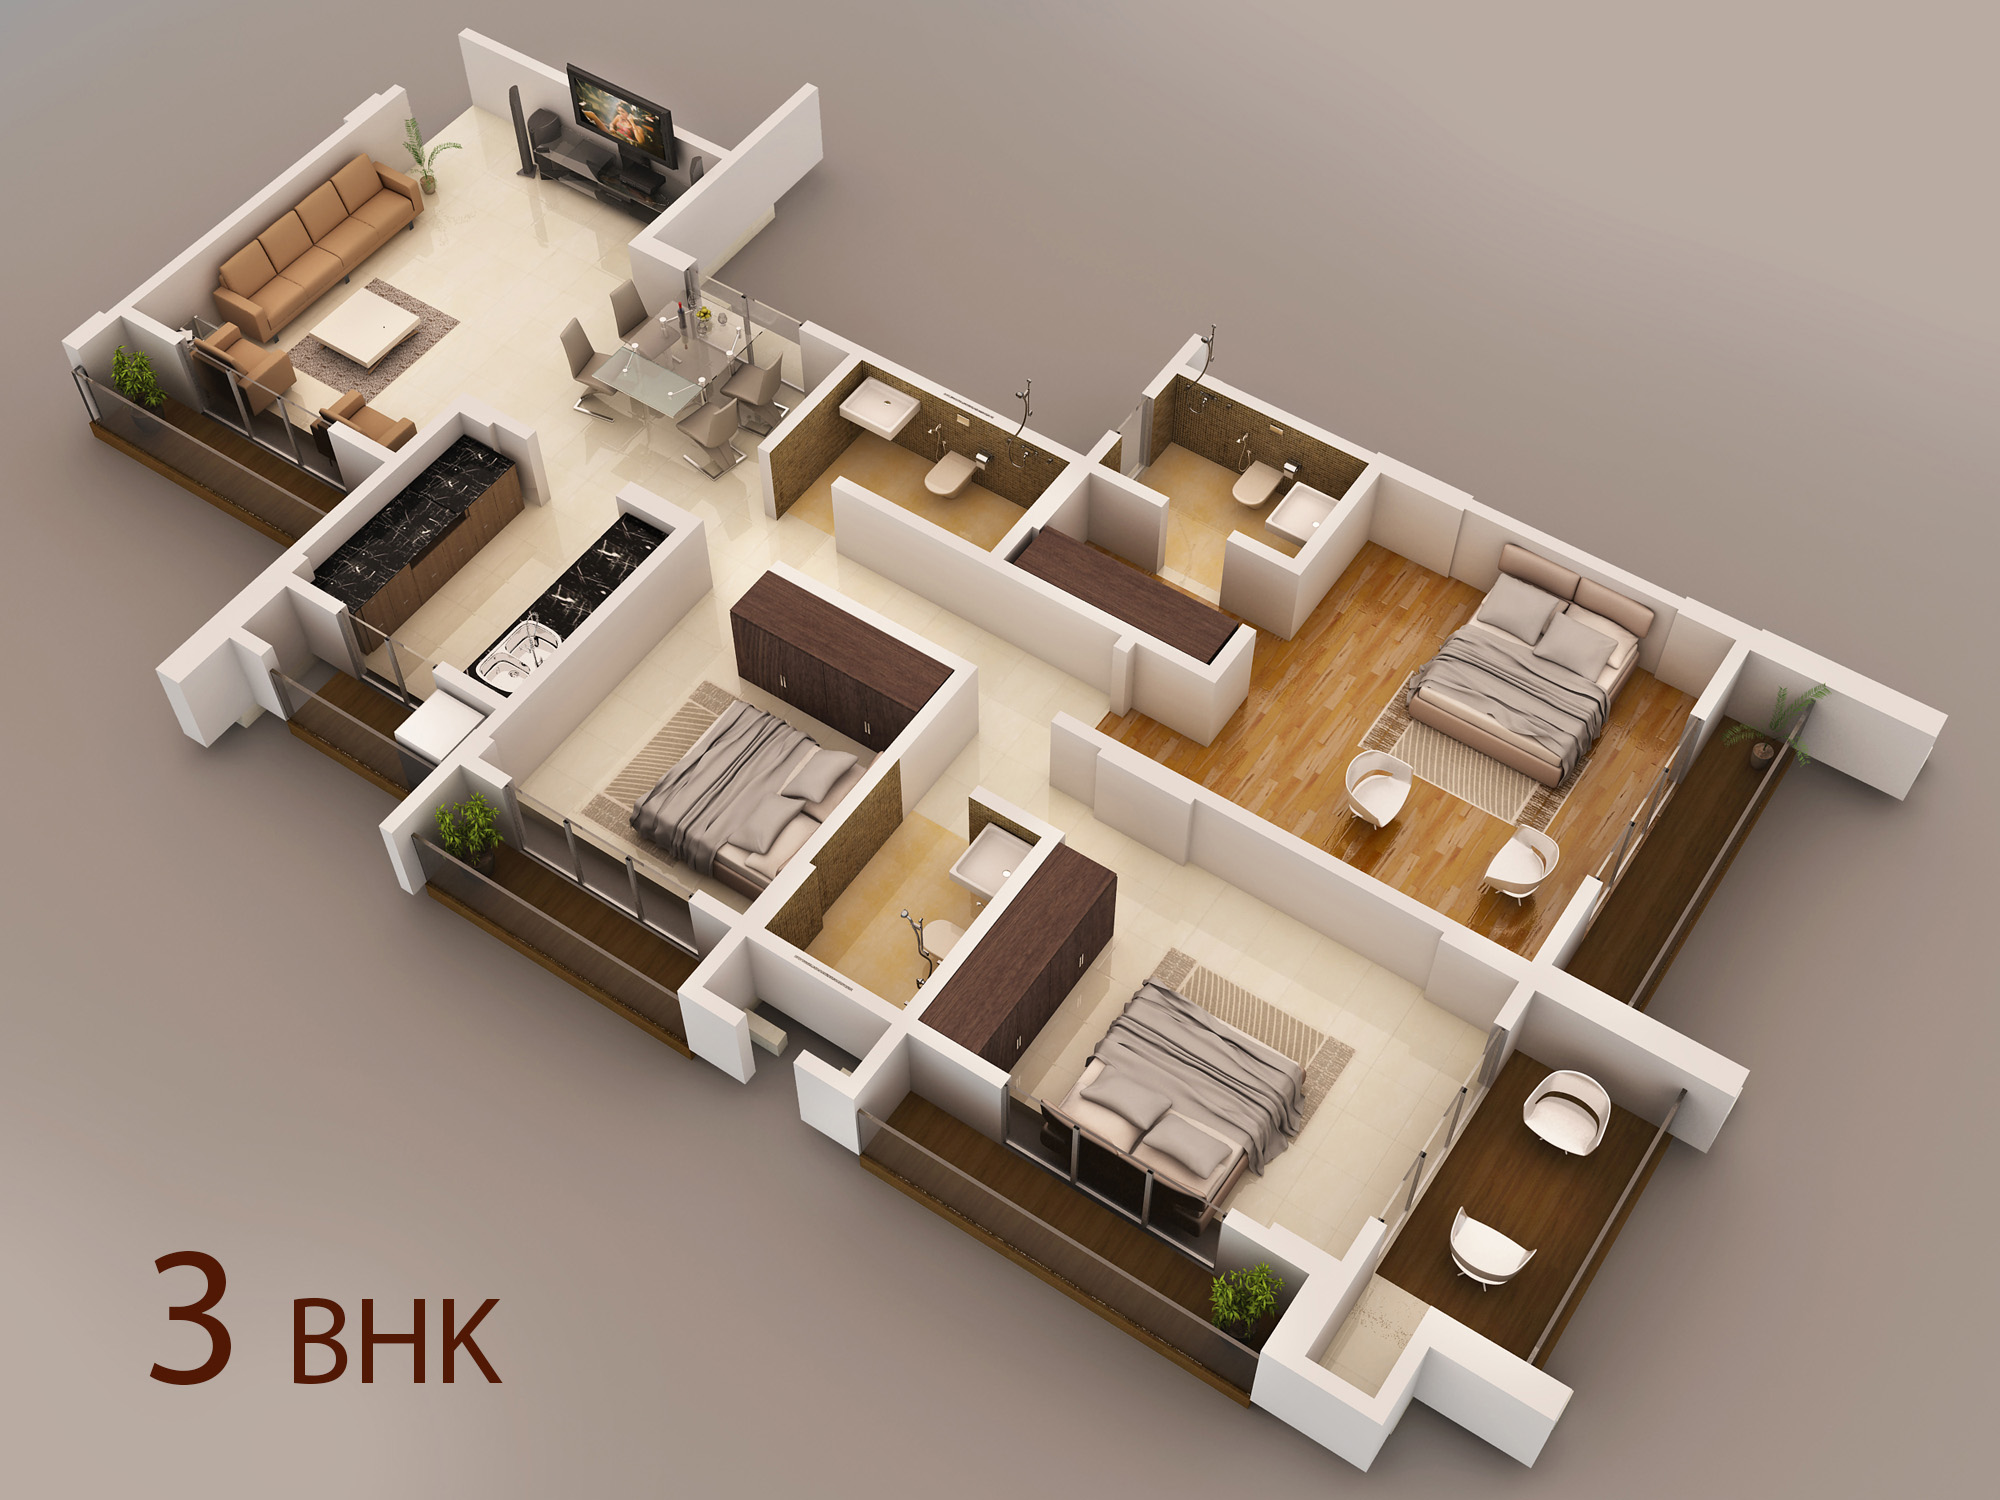 23 original home interior design for 3bhk flat for 3 bhk flat interior designs